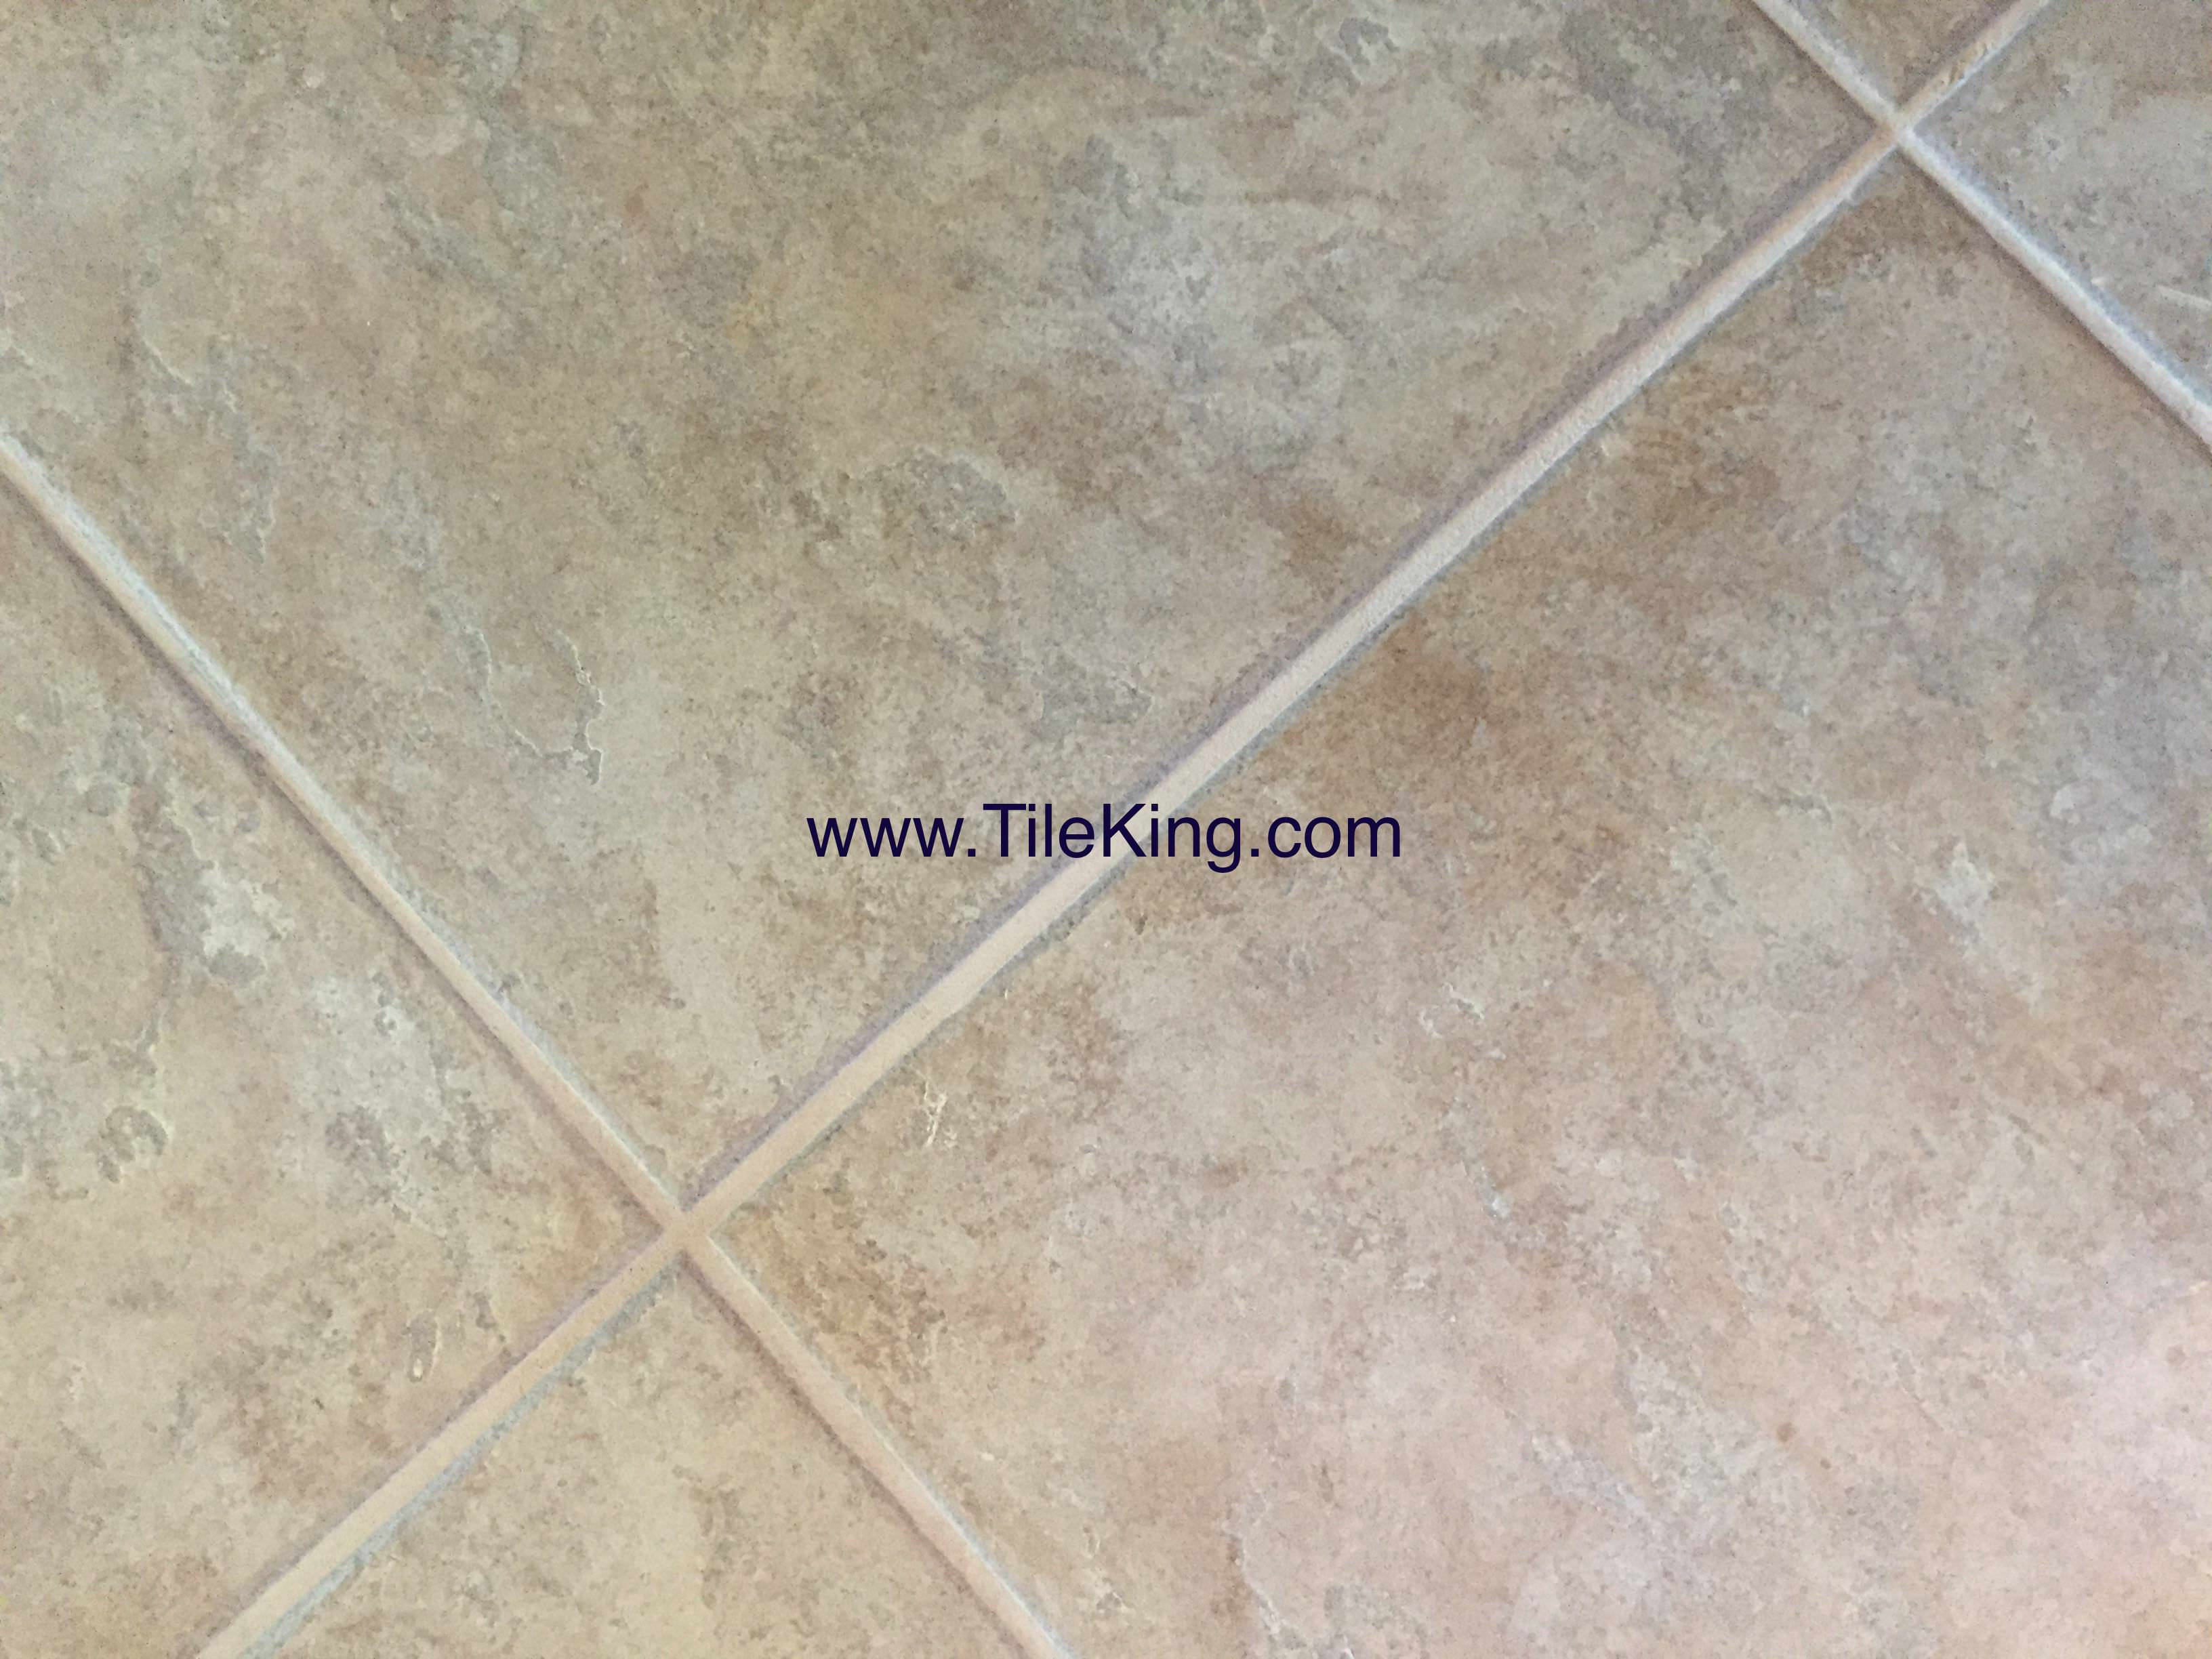 Scottsdale Tile Repairs And Grout Cleaning Grout Repairs And Sealing